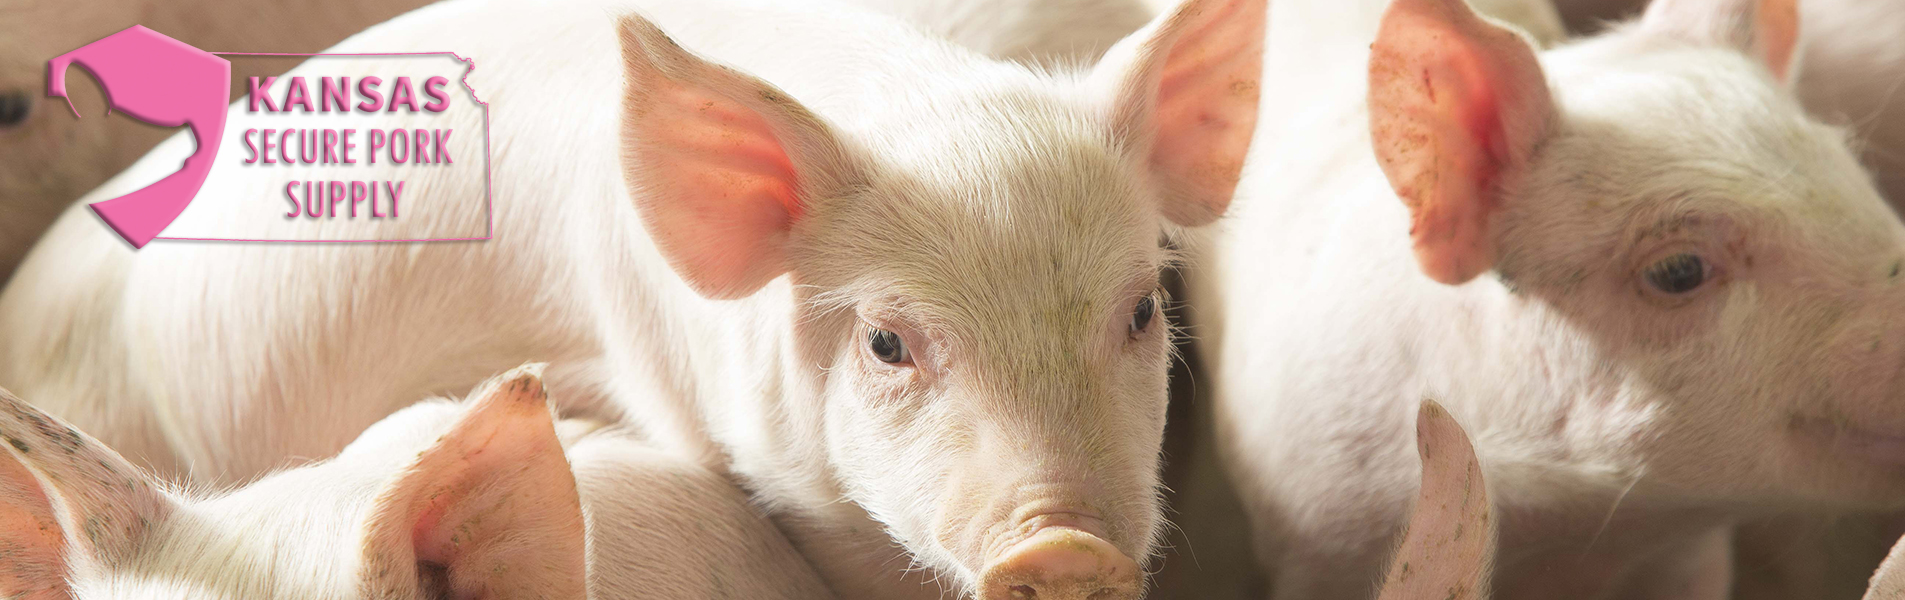 KPA encourages farms to complete Secure Pork Supply plans